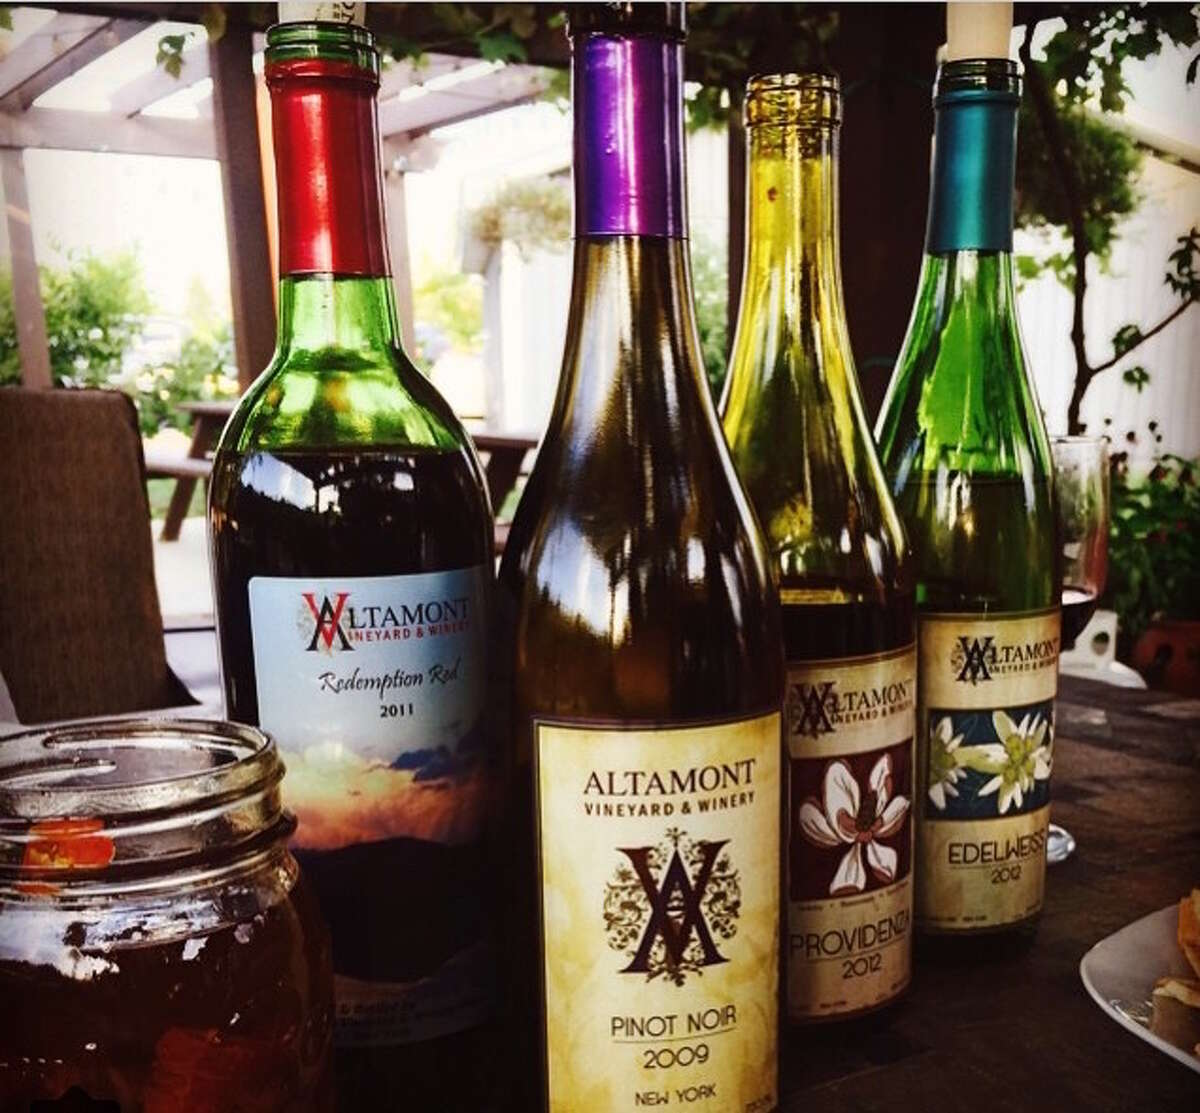 Altamont Vineyard and Winery  Location: Altamont